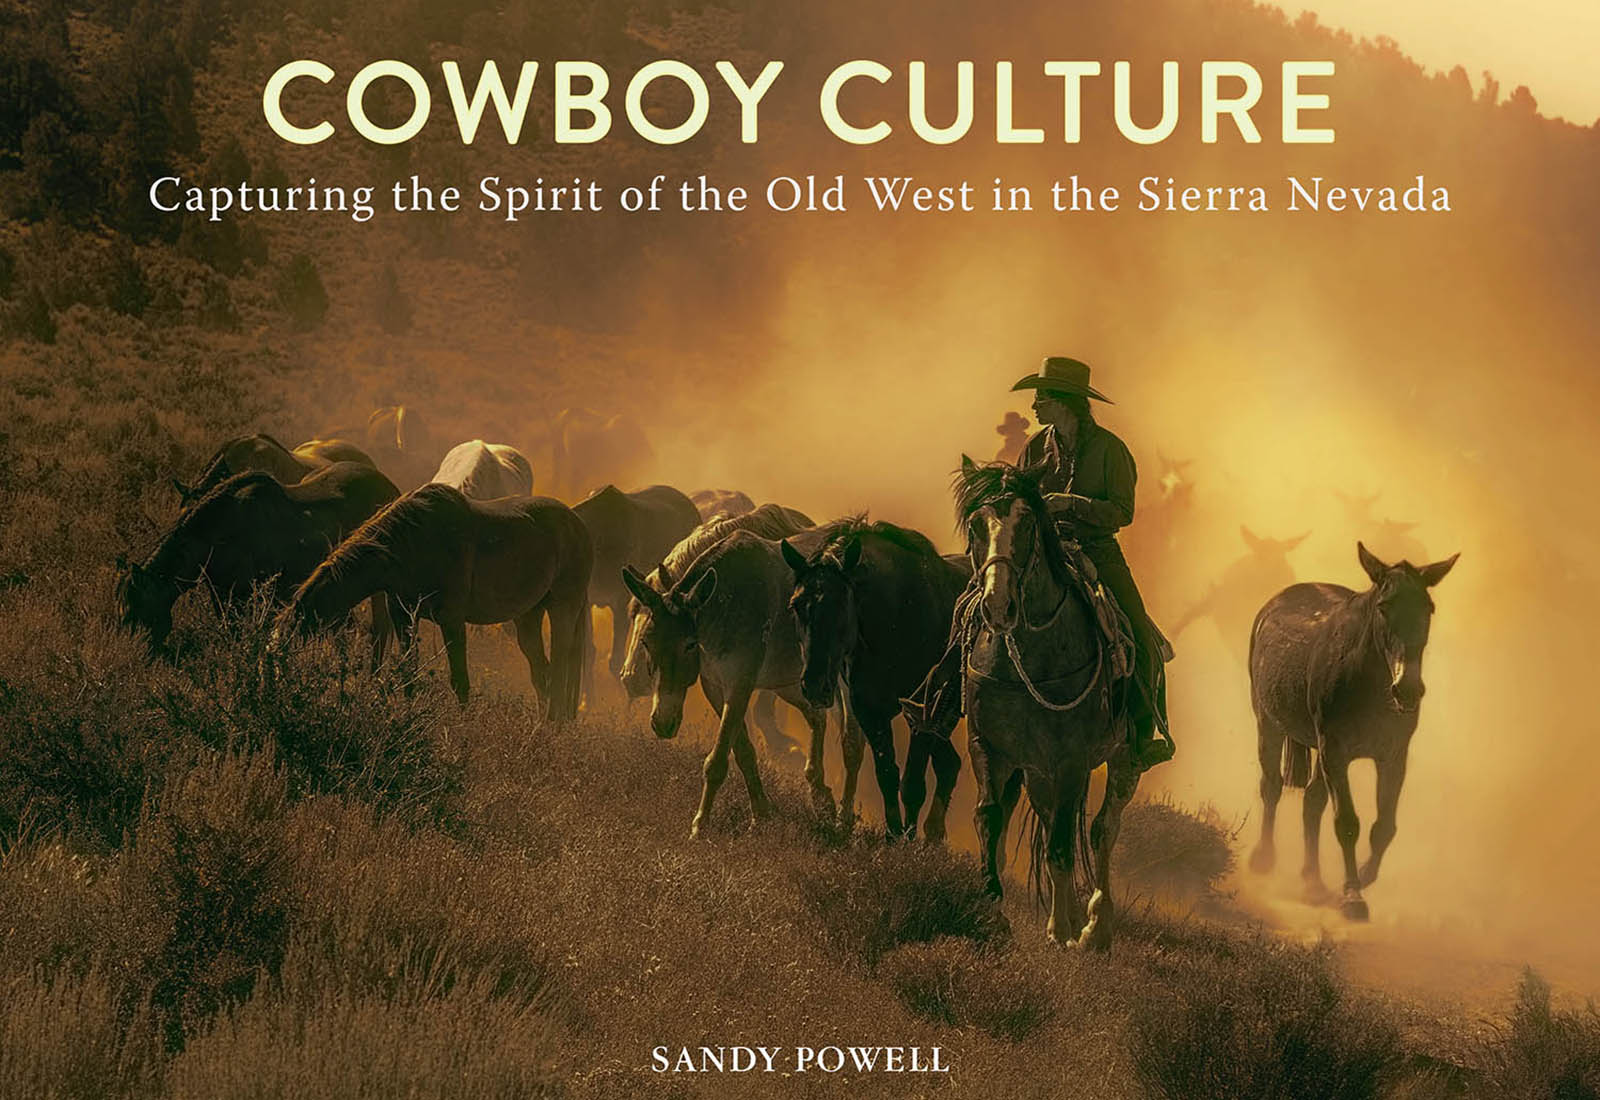 New book by Sandy Powell